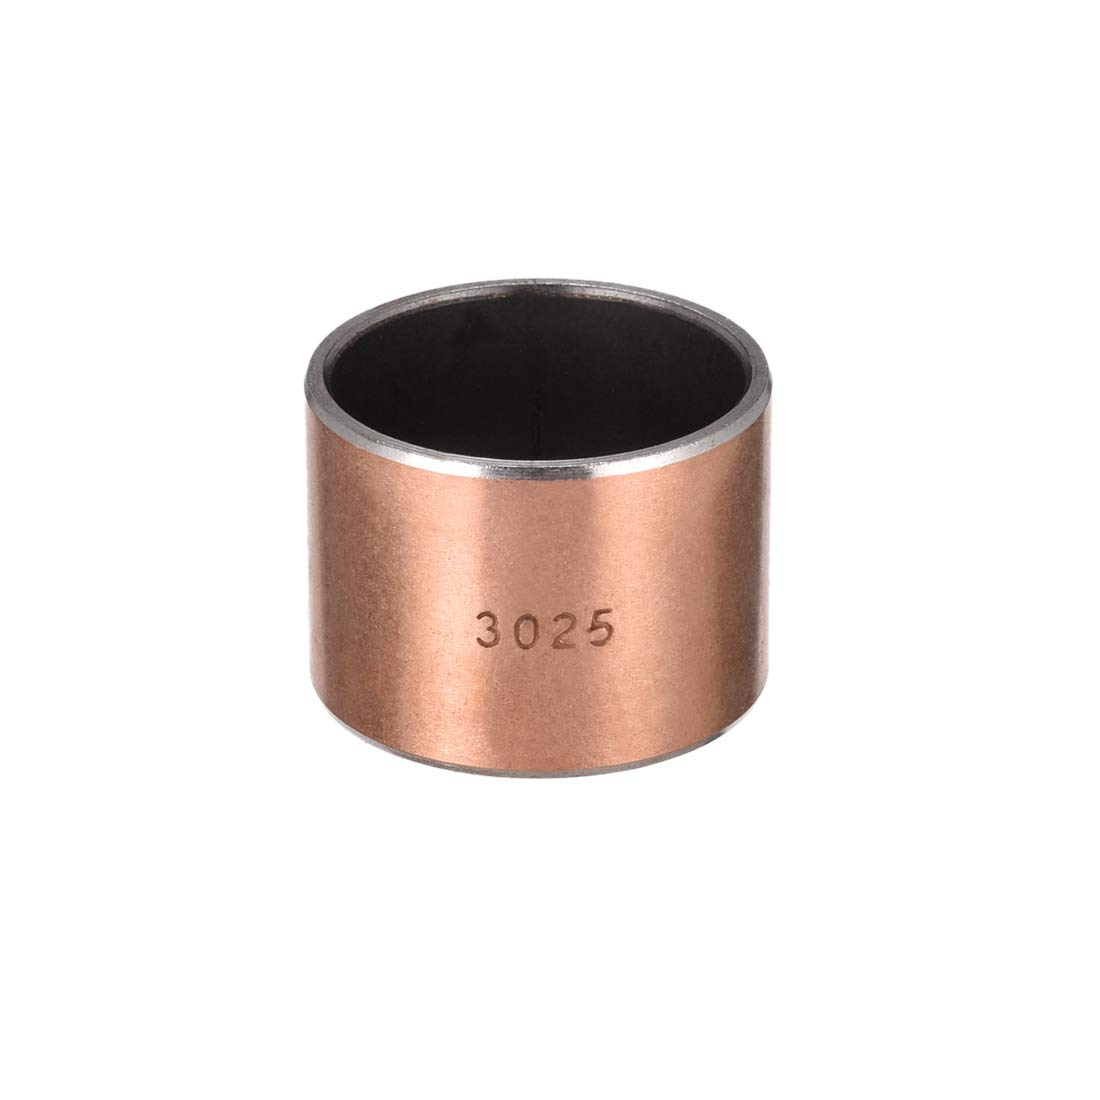 uxcell Sleeve Bearing 30mm Bore x 34mm OD x 30mm Length Plain Bearings Wrapped Oilless Bushings Pack of 1